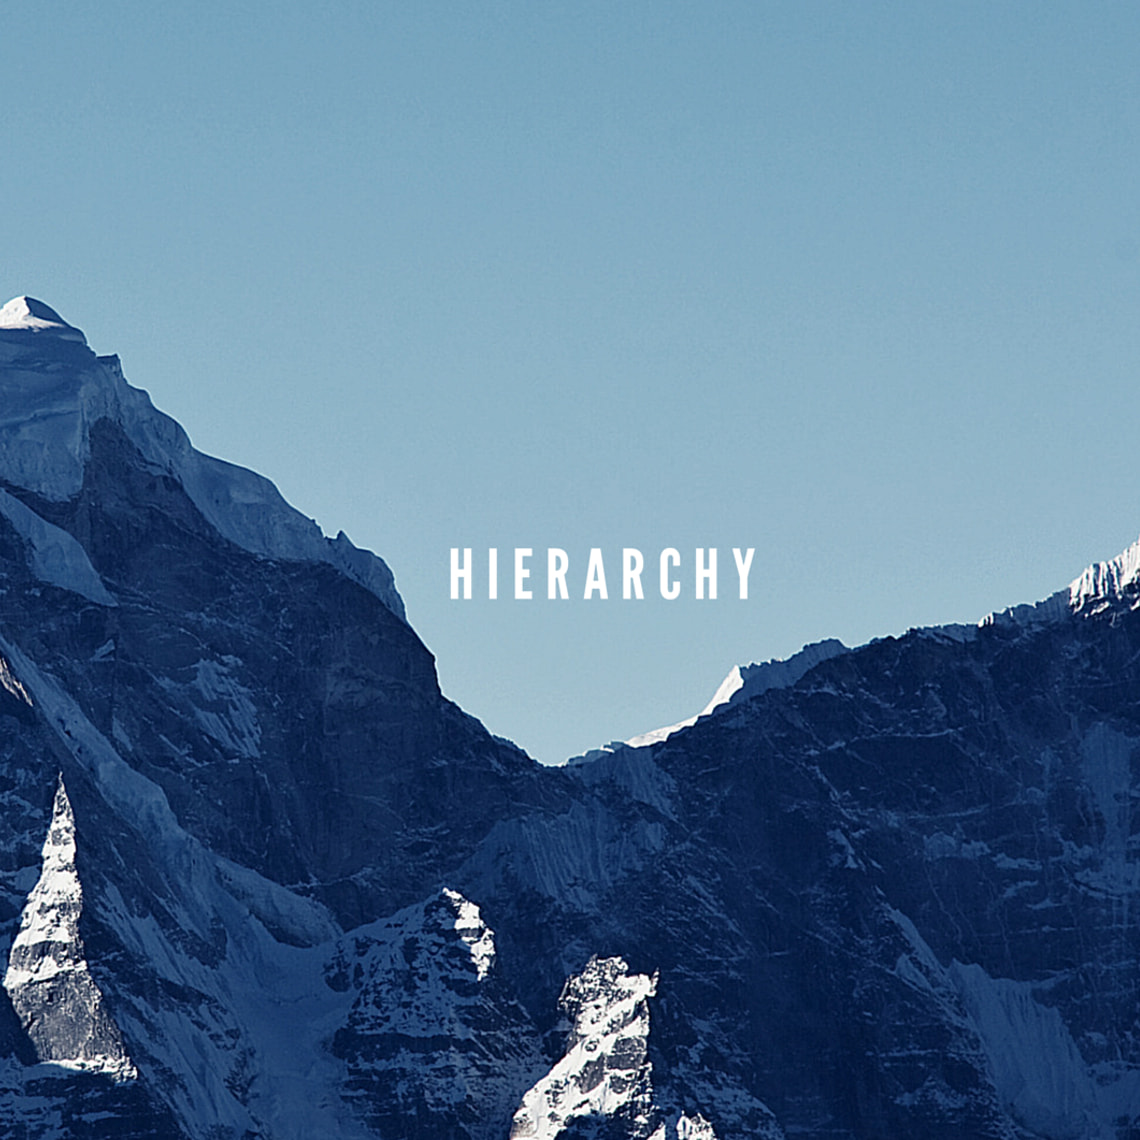 Hierarchy applies order to your designs and makes sure the most important elements are seen first